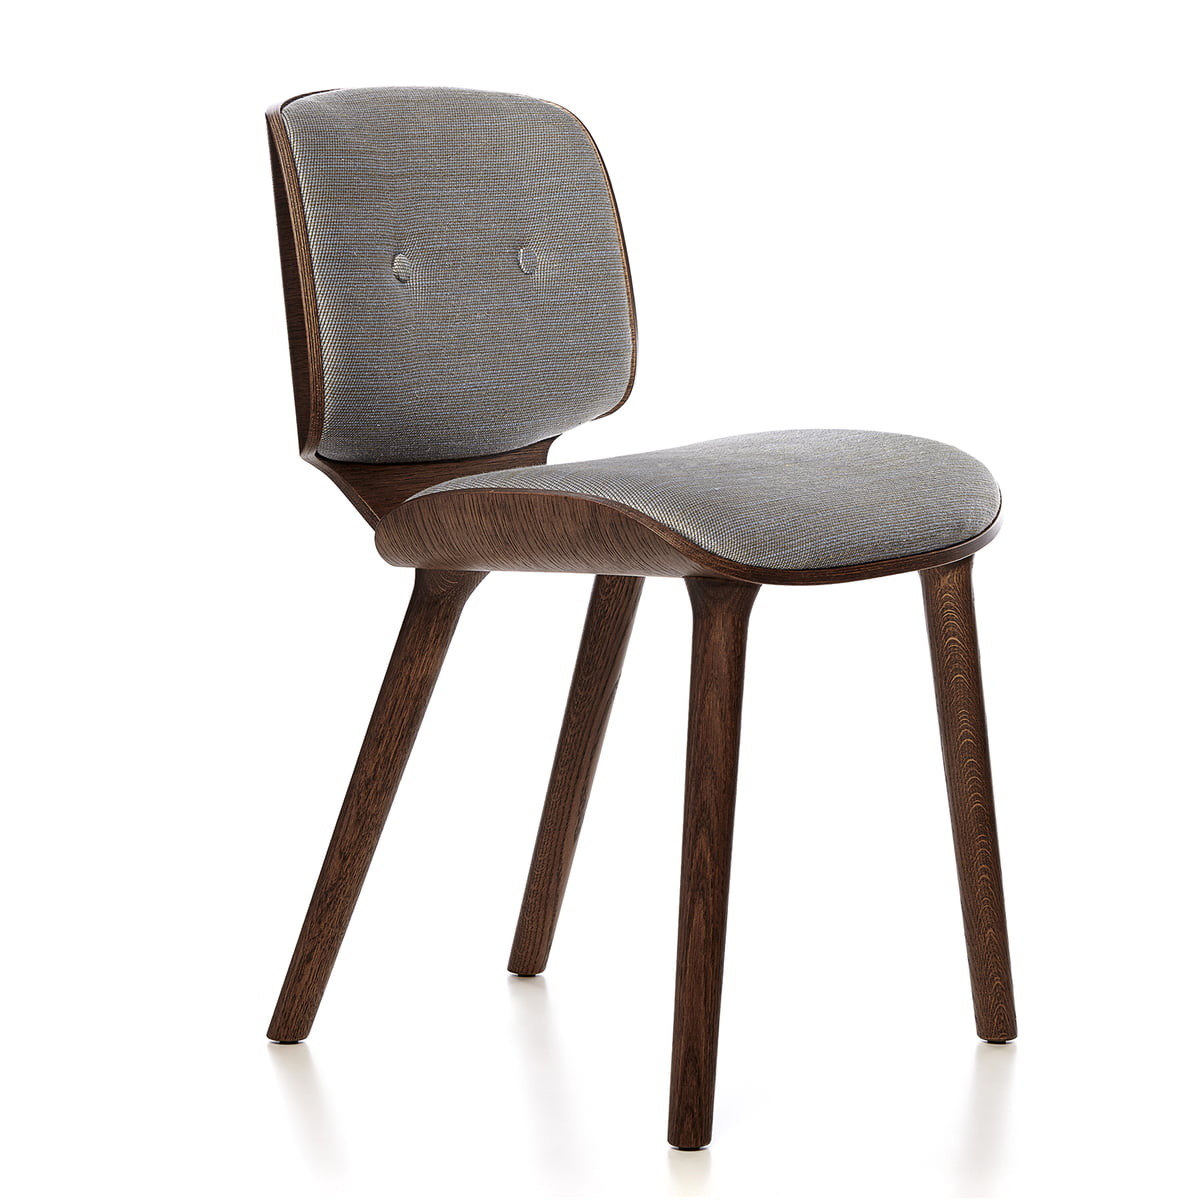 Nut Dining Chair By Moooi Online